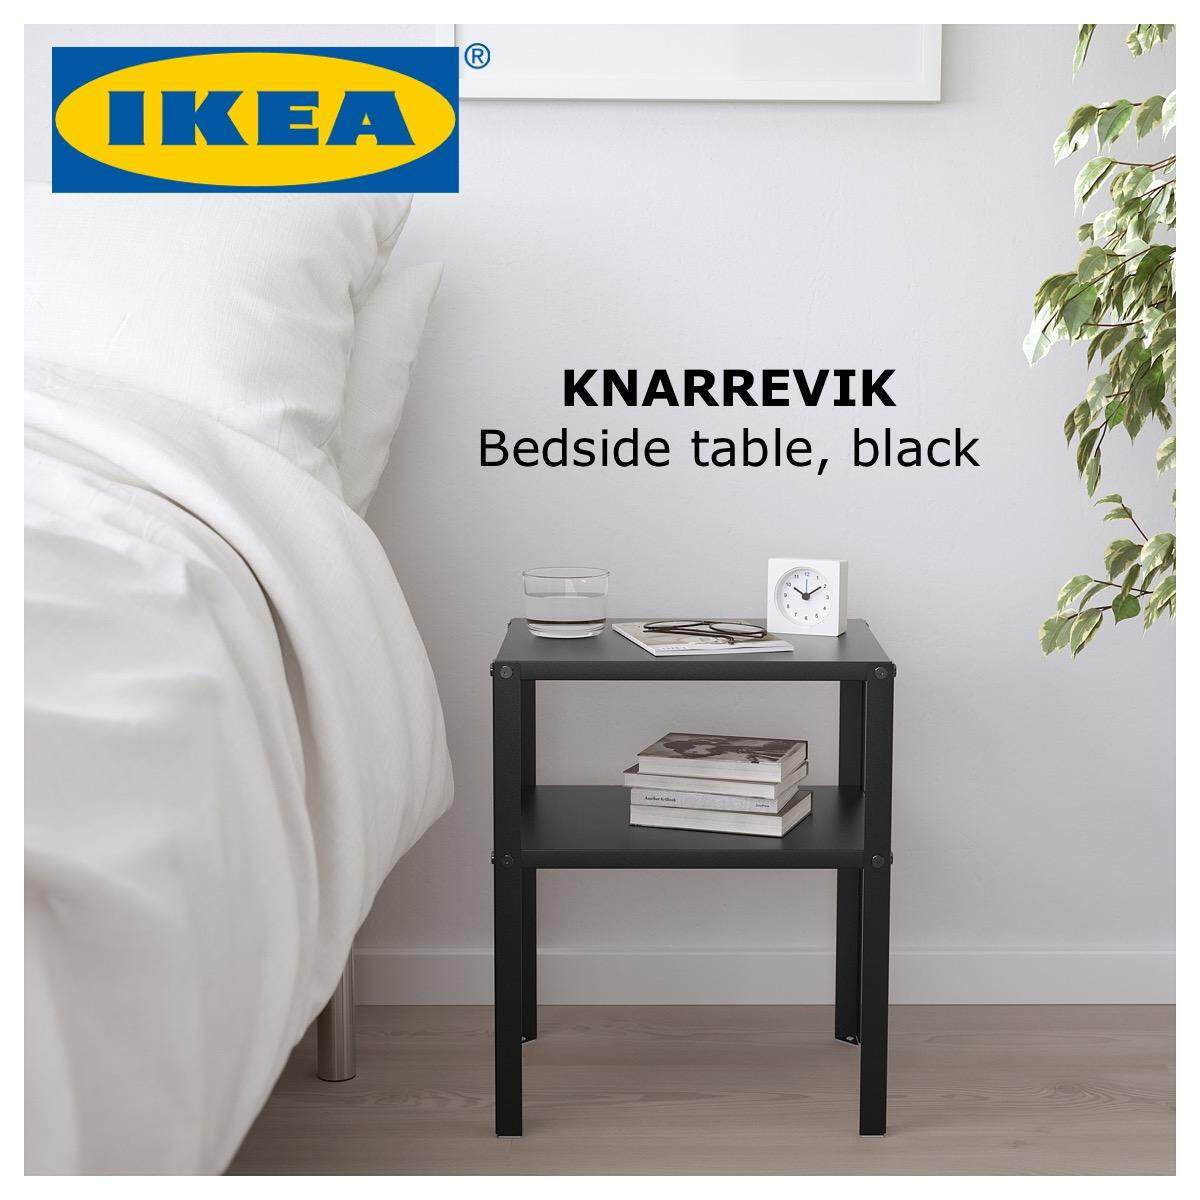 Ikea Knarrevik Small Room Metal Modern Design Furniture Bedside